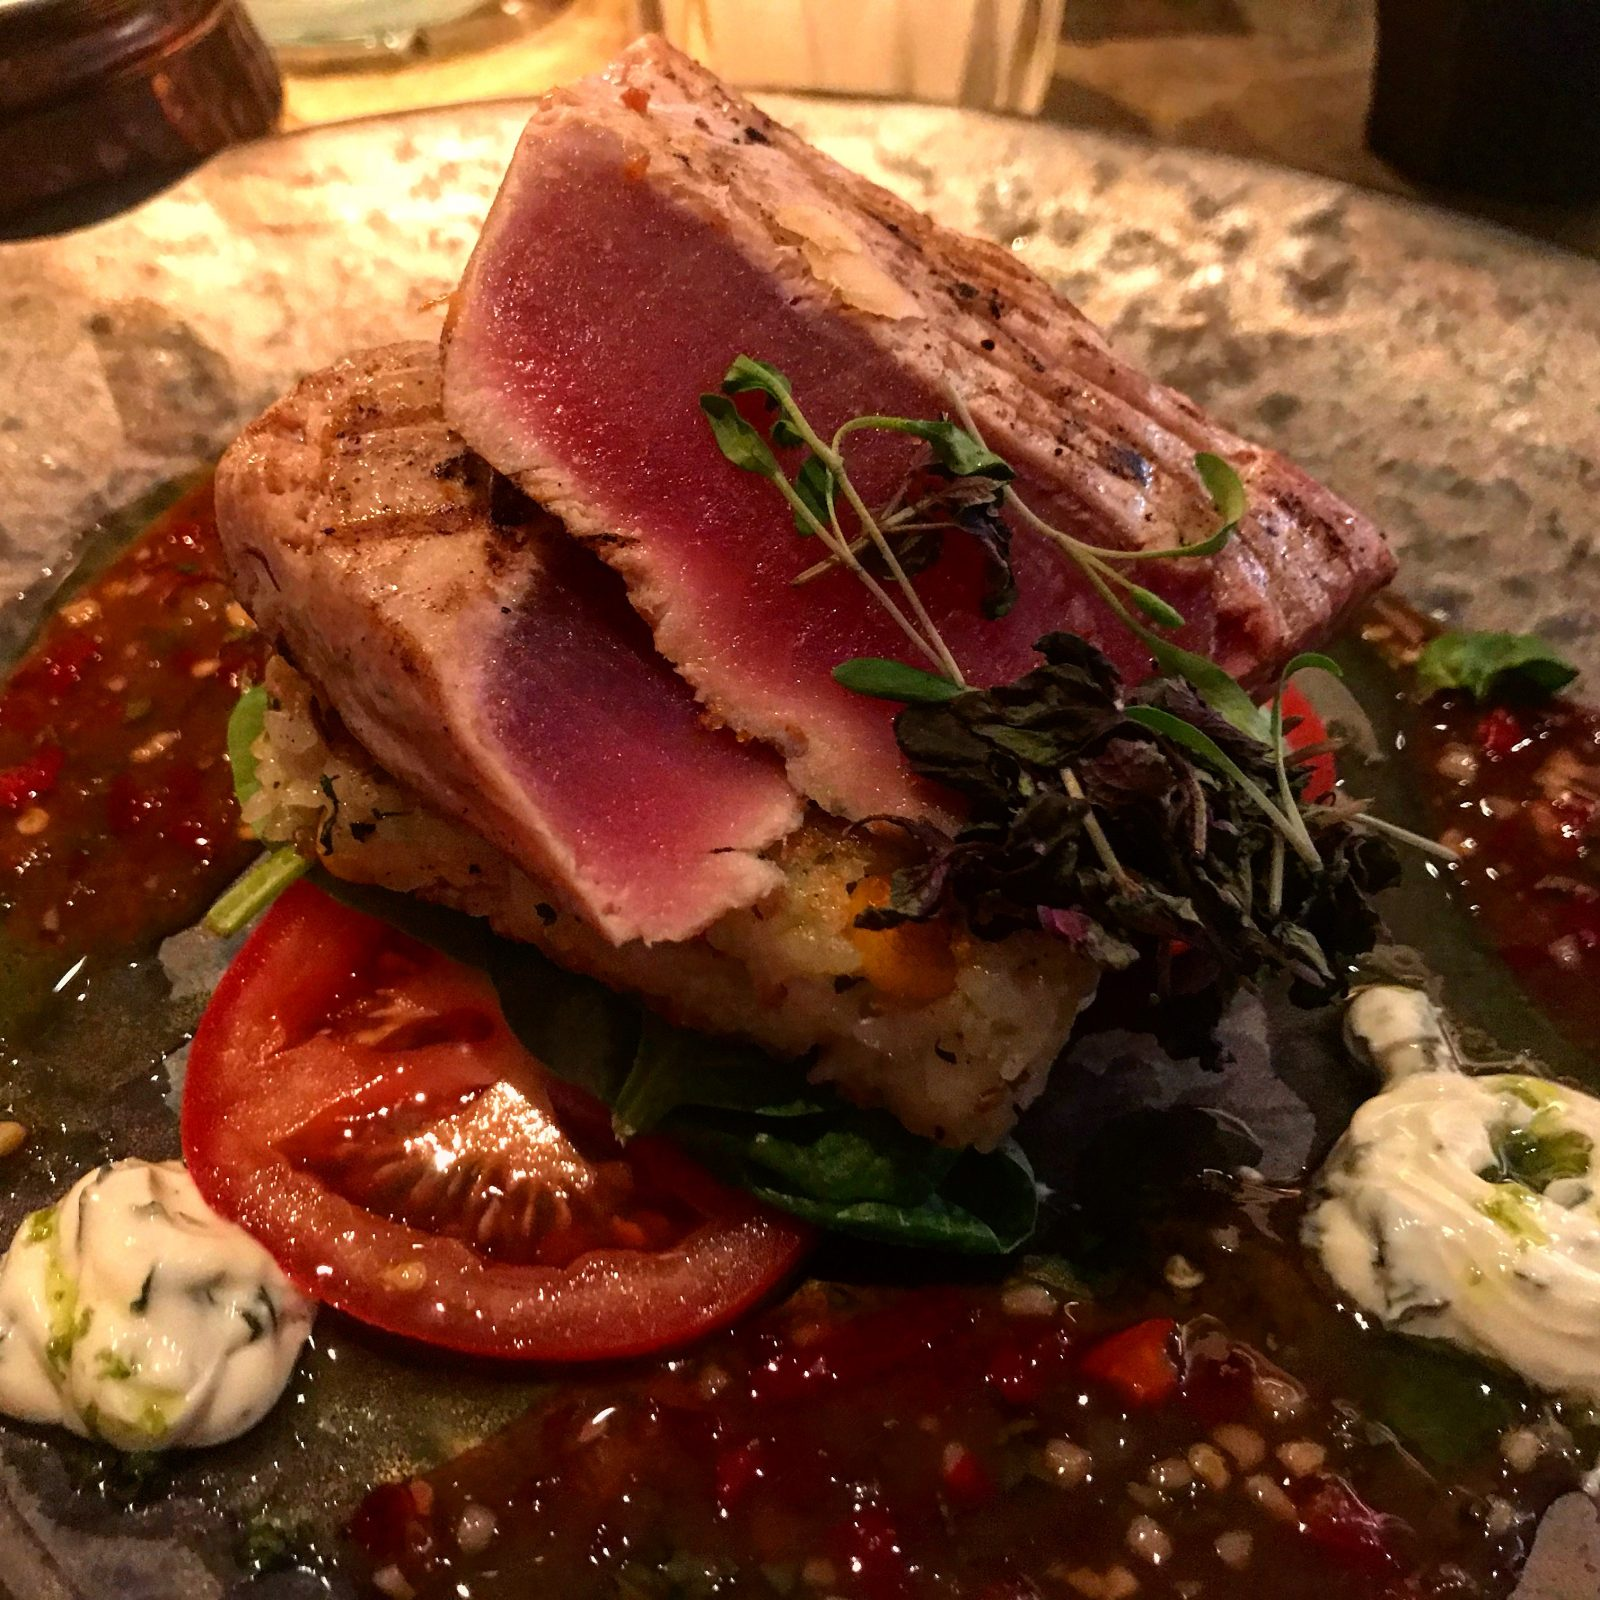 tuna and rice cake - The Alchemist Cardiff